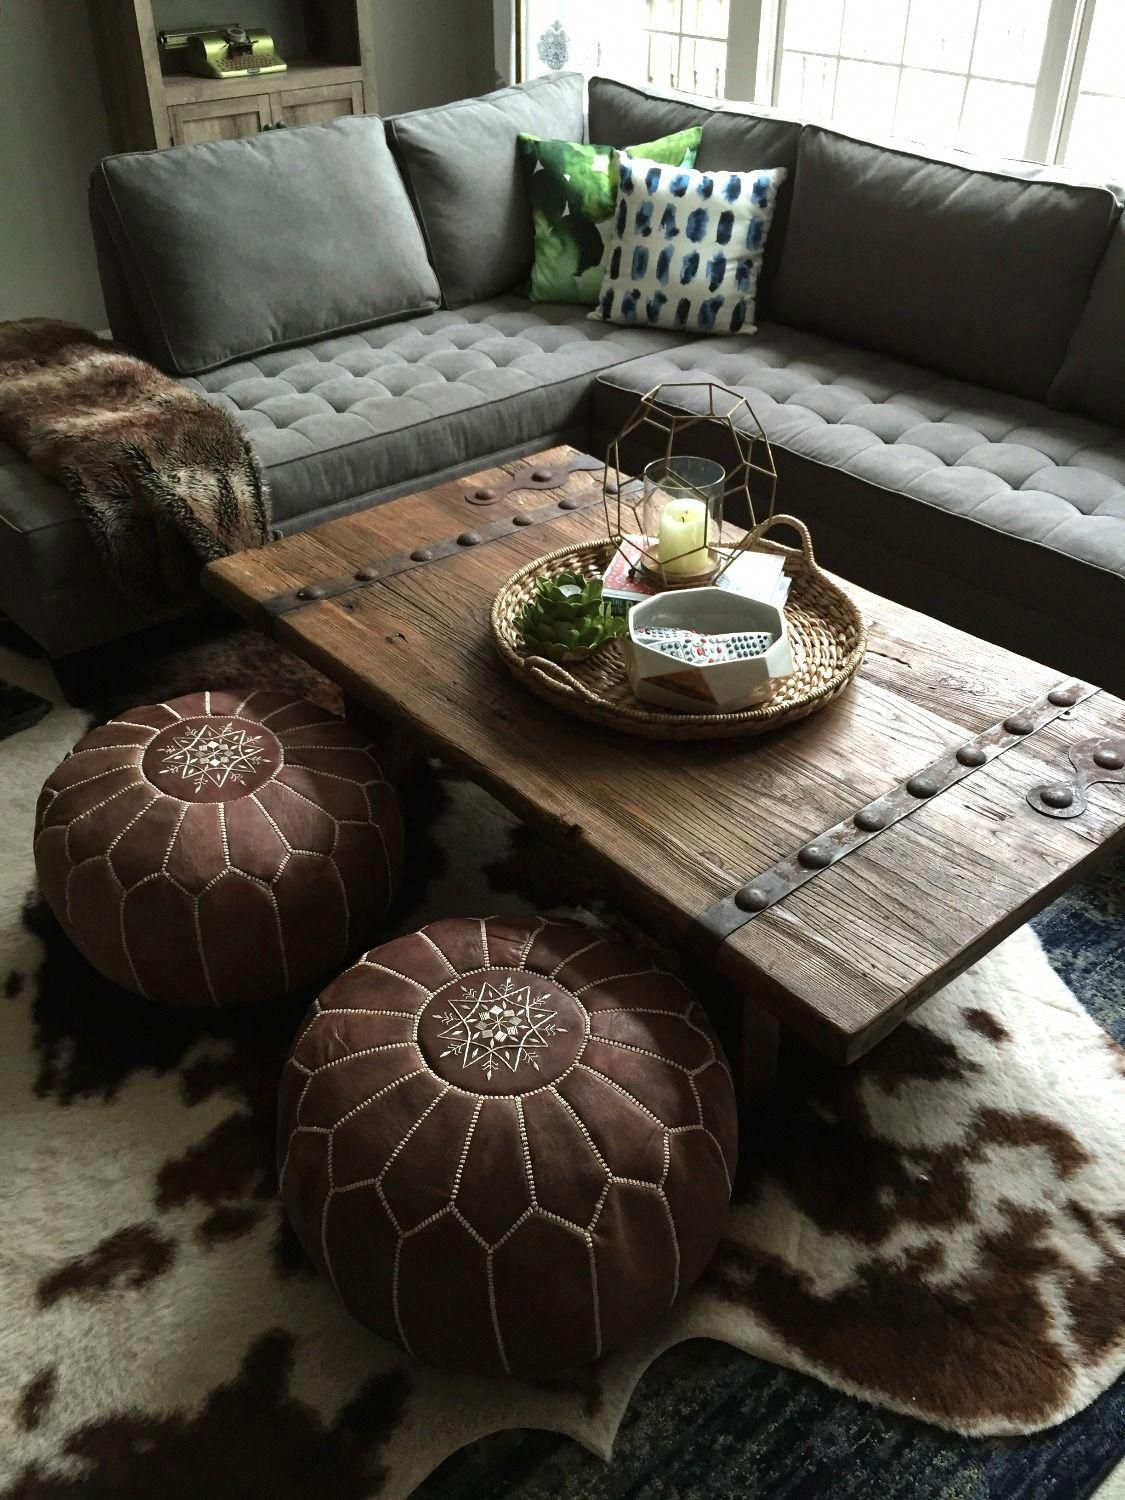 Coffee tables the latest in bohemian fashion these literally go viral also best sofas images bedrooms room apartment ideas rh pinterest